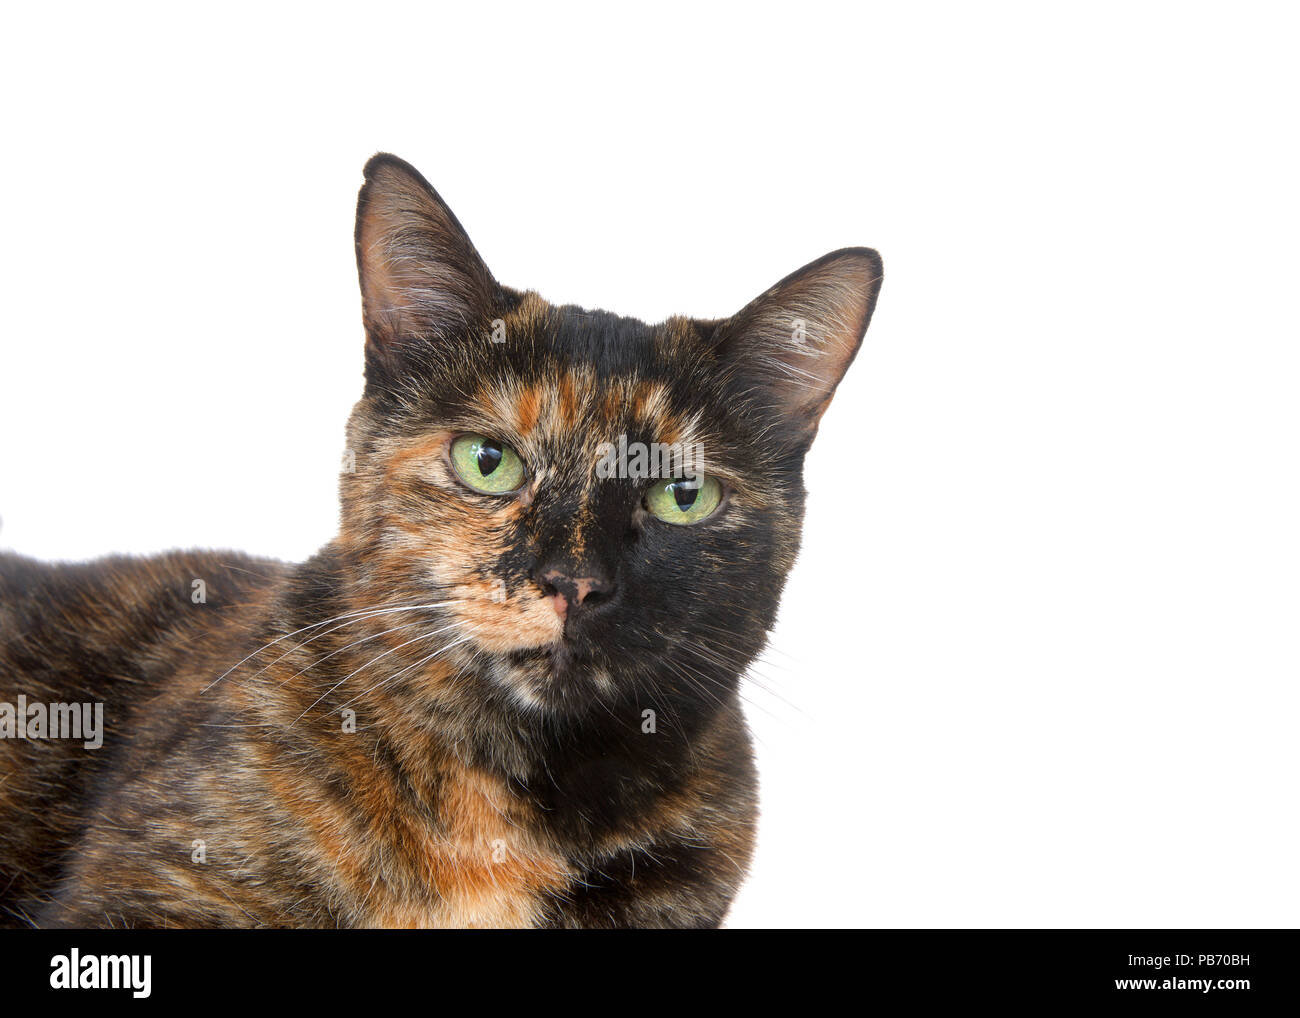 Portrait of a tortie torbie tabby cat with green eyes isolated on white background. Looking directly at viewer Stock Photo